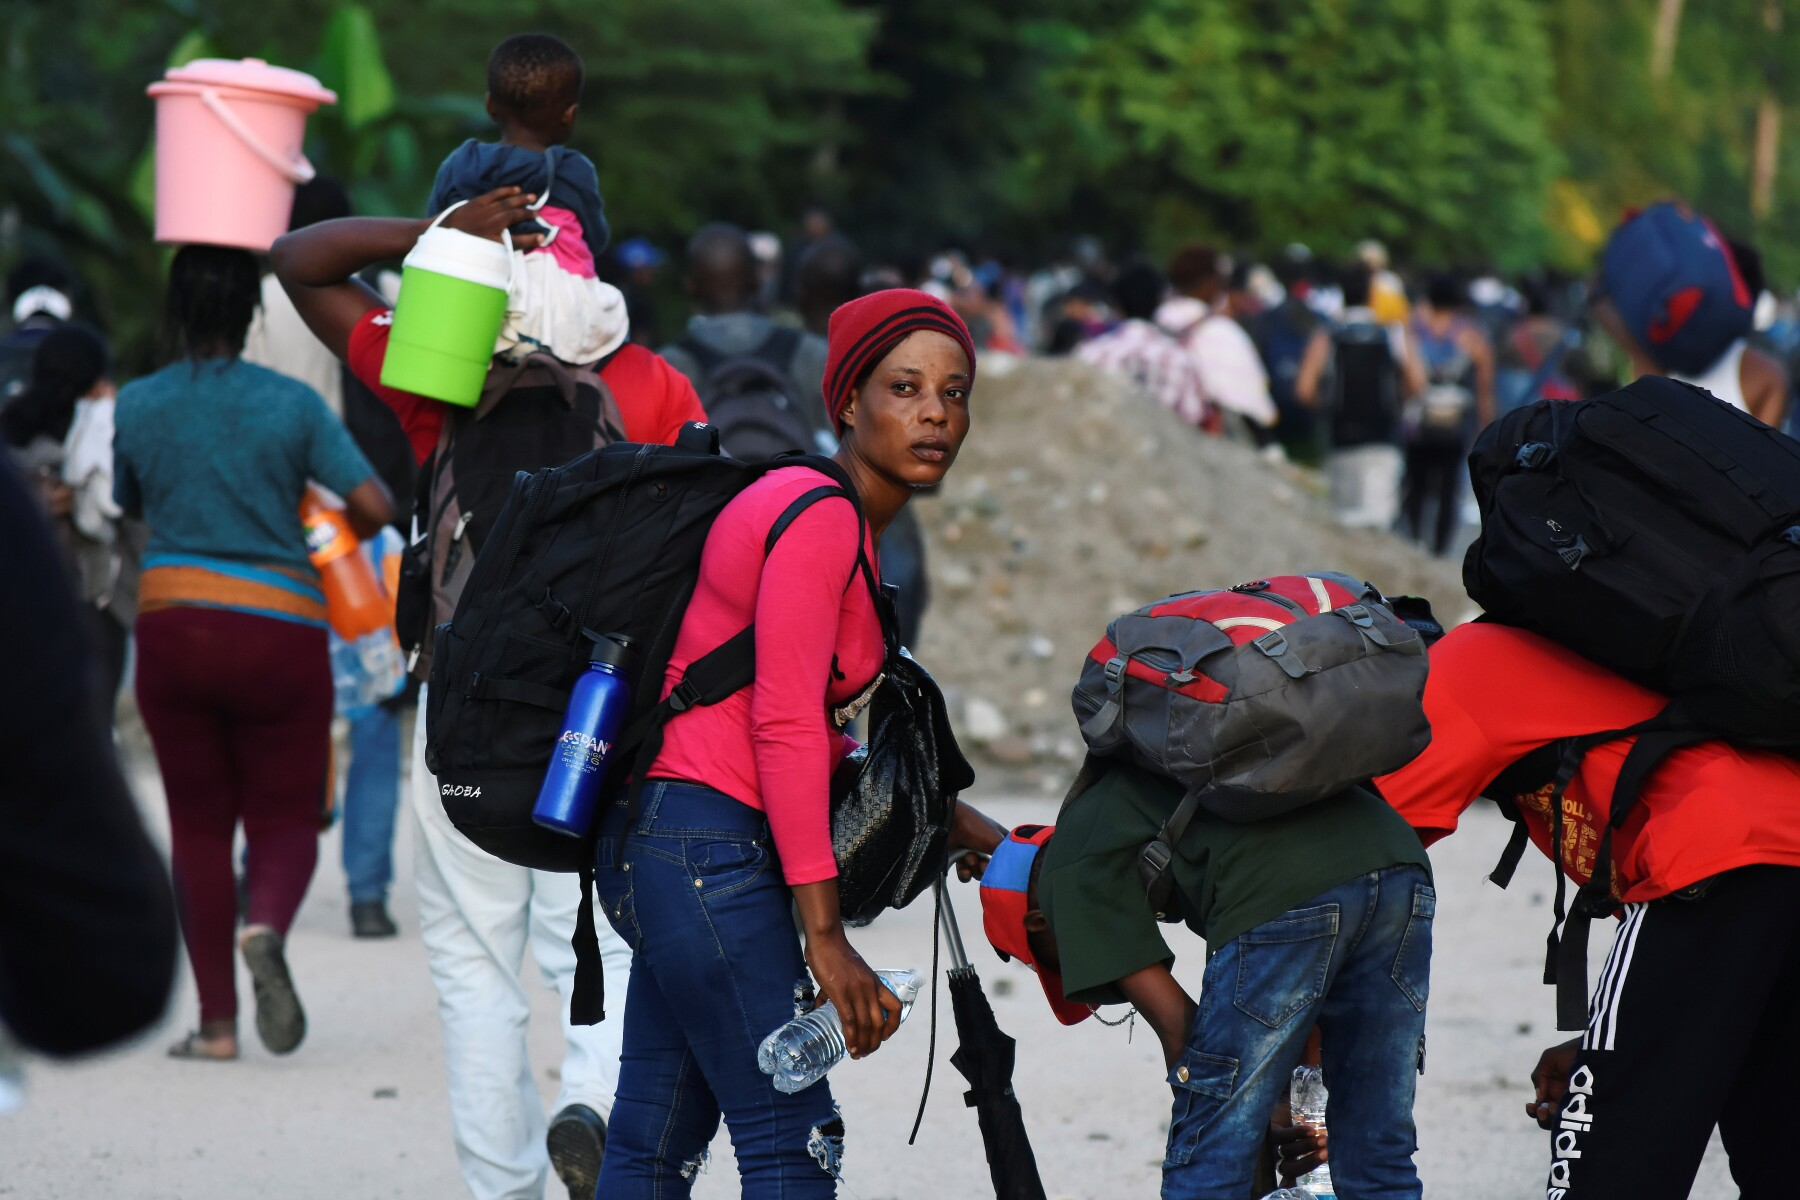 Migrants walk along a road in a caravan towards the United States, in Tapachula